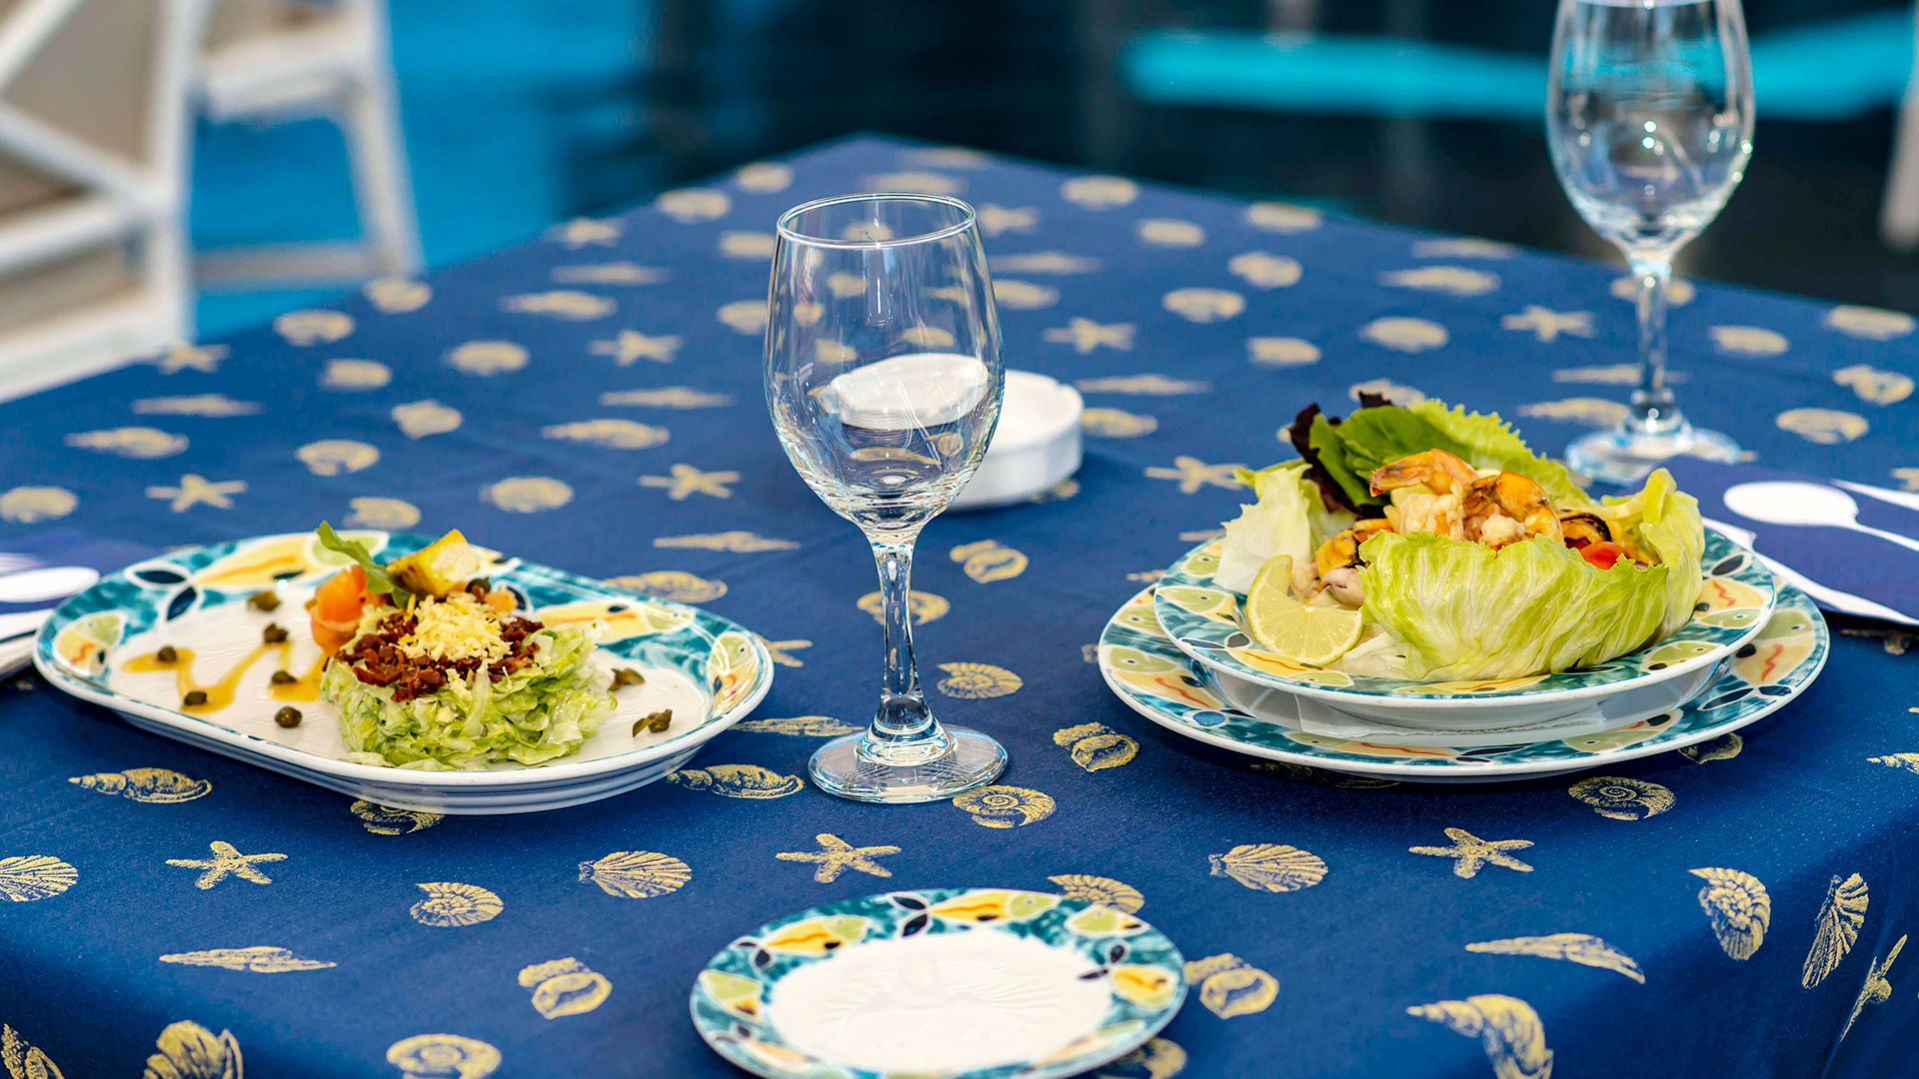 A Blue And White Plate Sitting On Top Of A Table With Wine Glasses